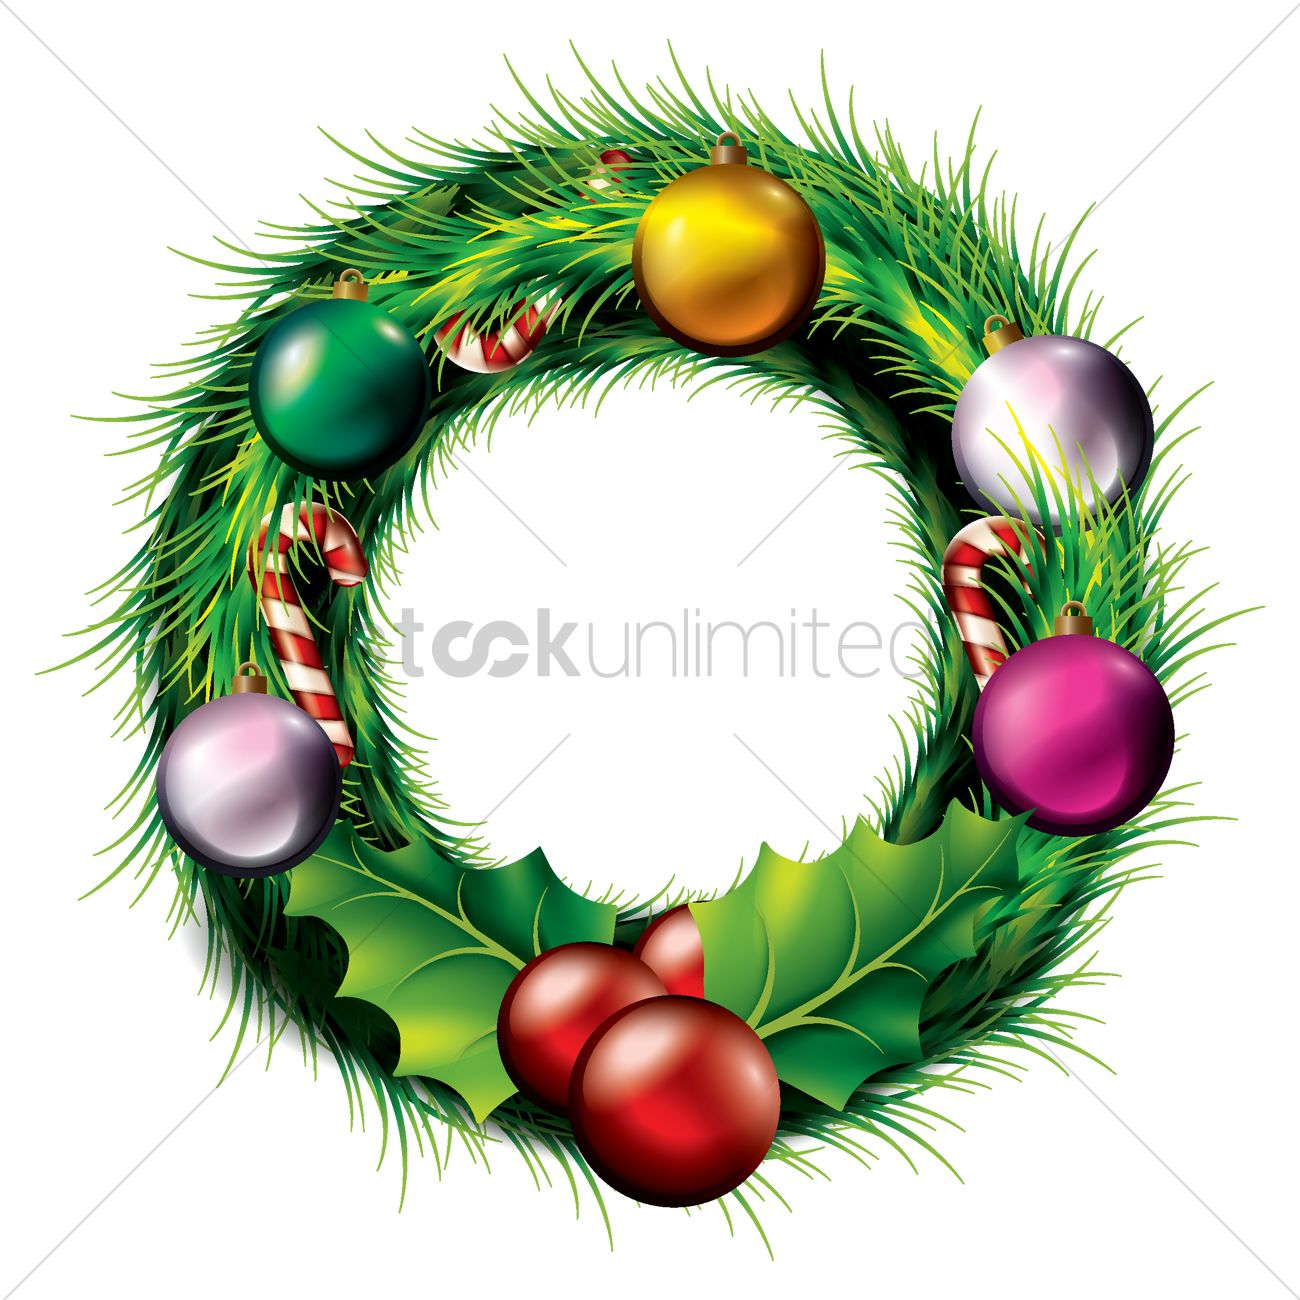 Christmas Wreath Vector.Christmas Wreath Vector Image 1954790 Stockunlimited